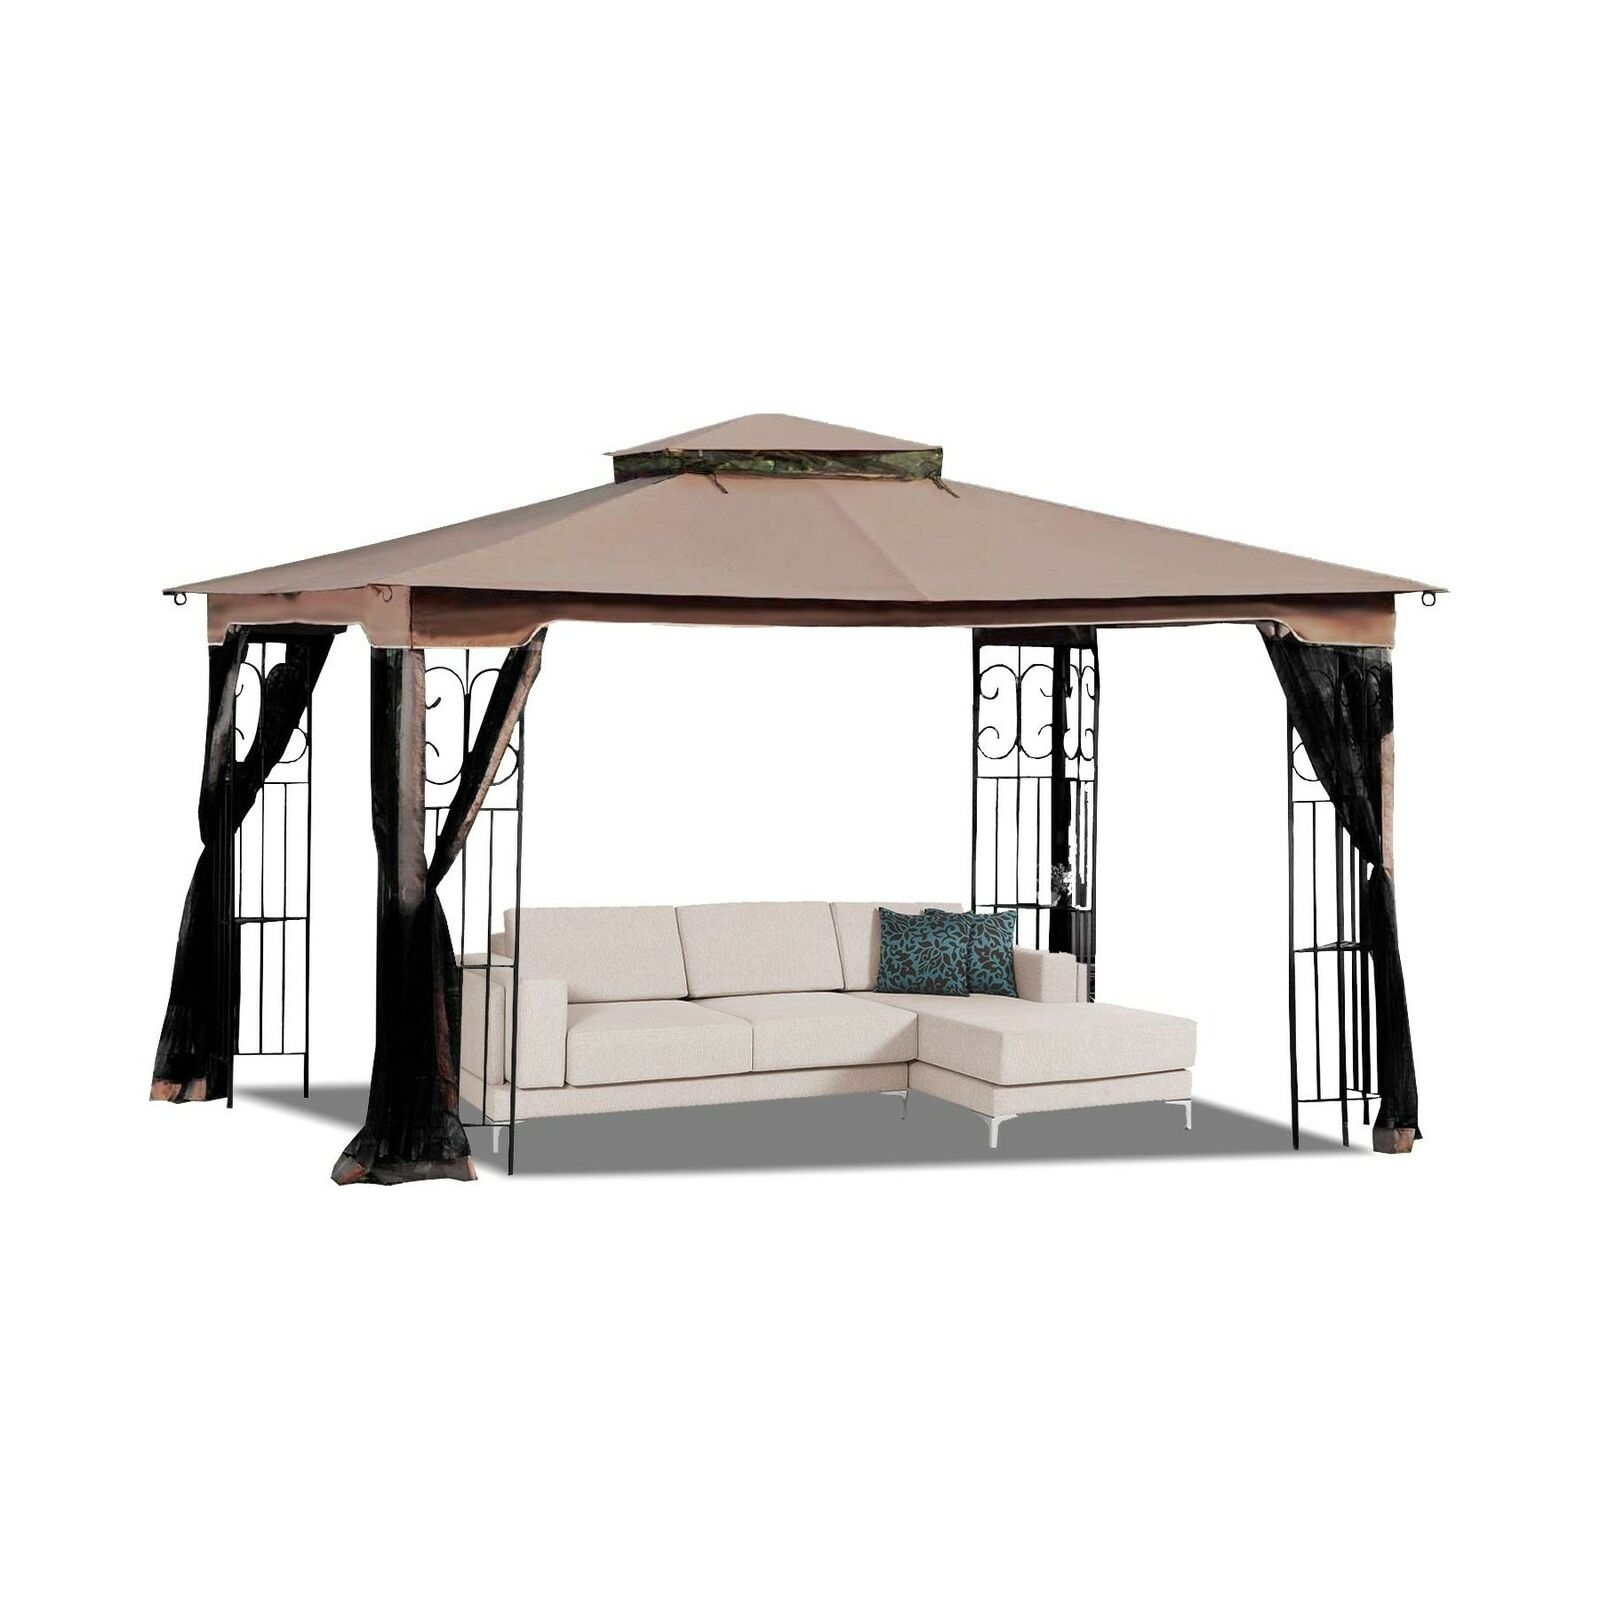 mastercanopy 10 x 12 gazebo replacement canopy roof for model gz798pst eon